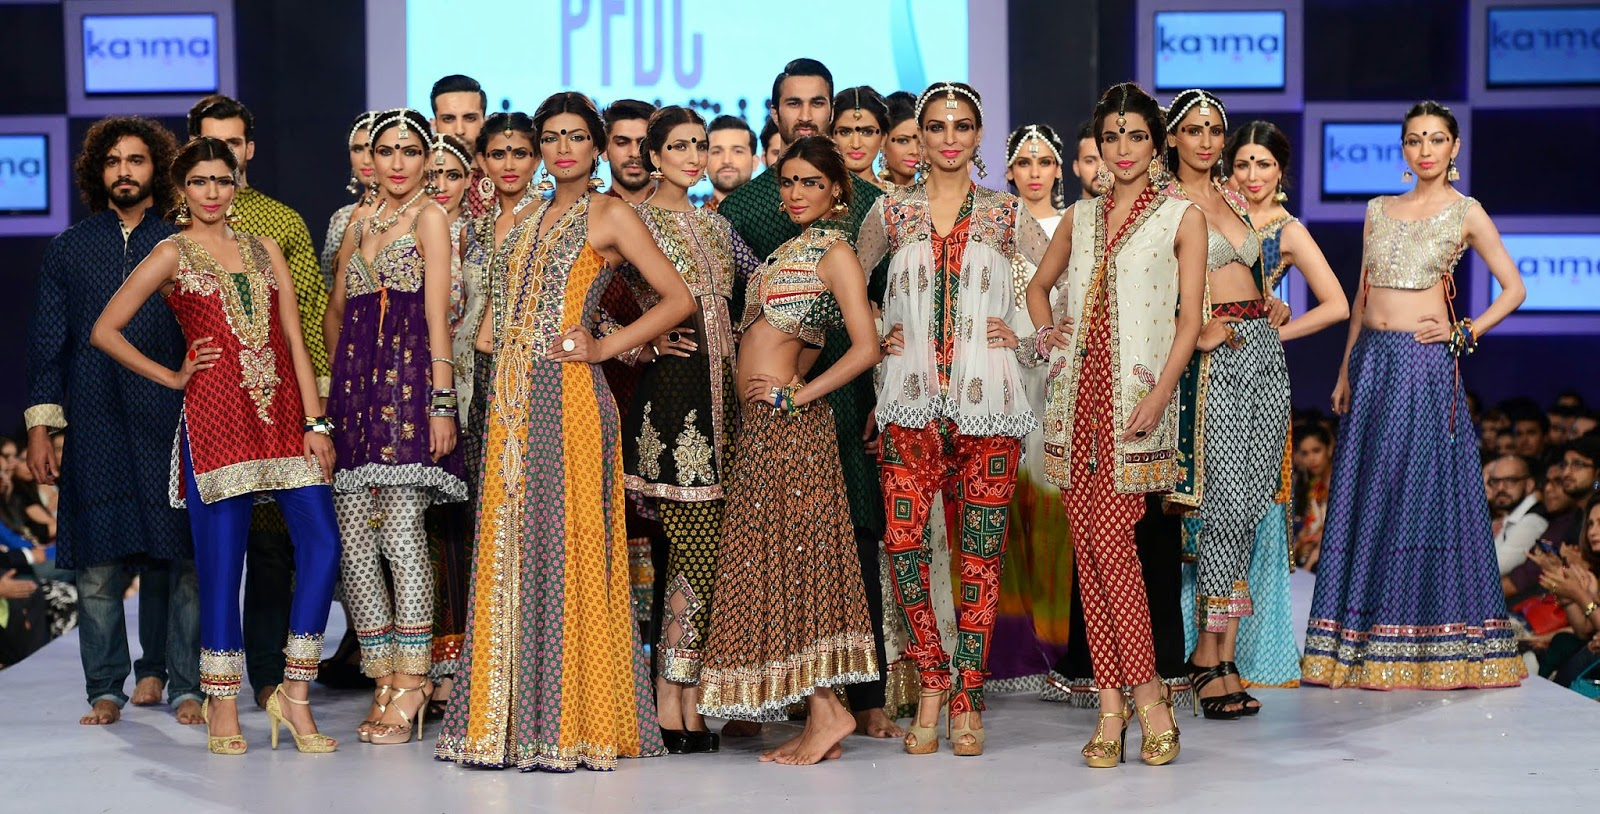 Karma Pink at PFDC Sunsilk Fashion Week 2014 - PSFW - Rajasthani Kahani